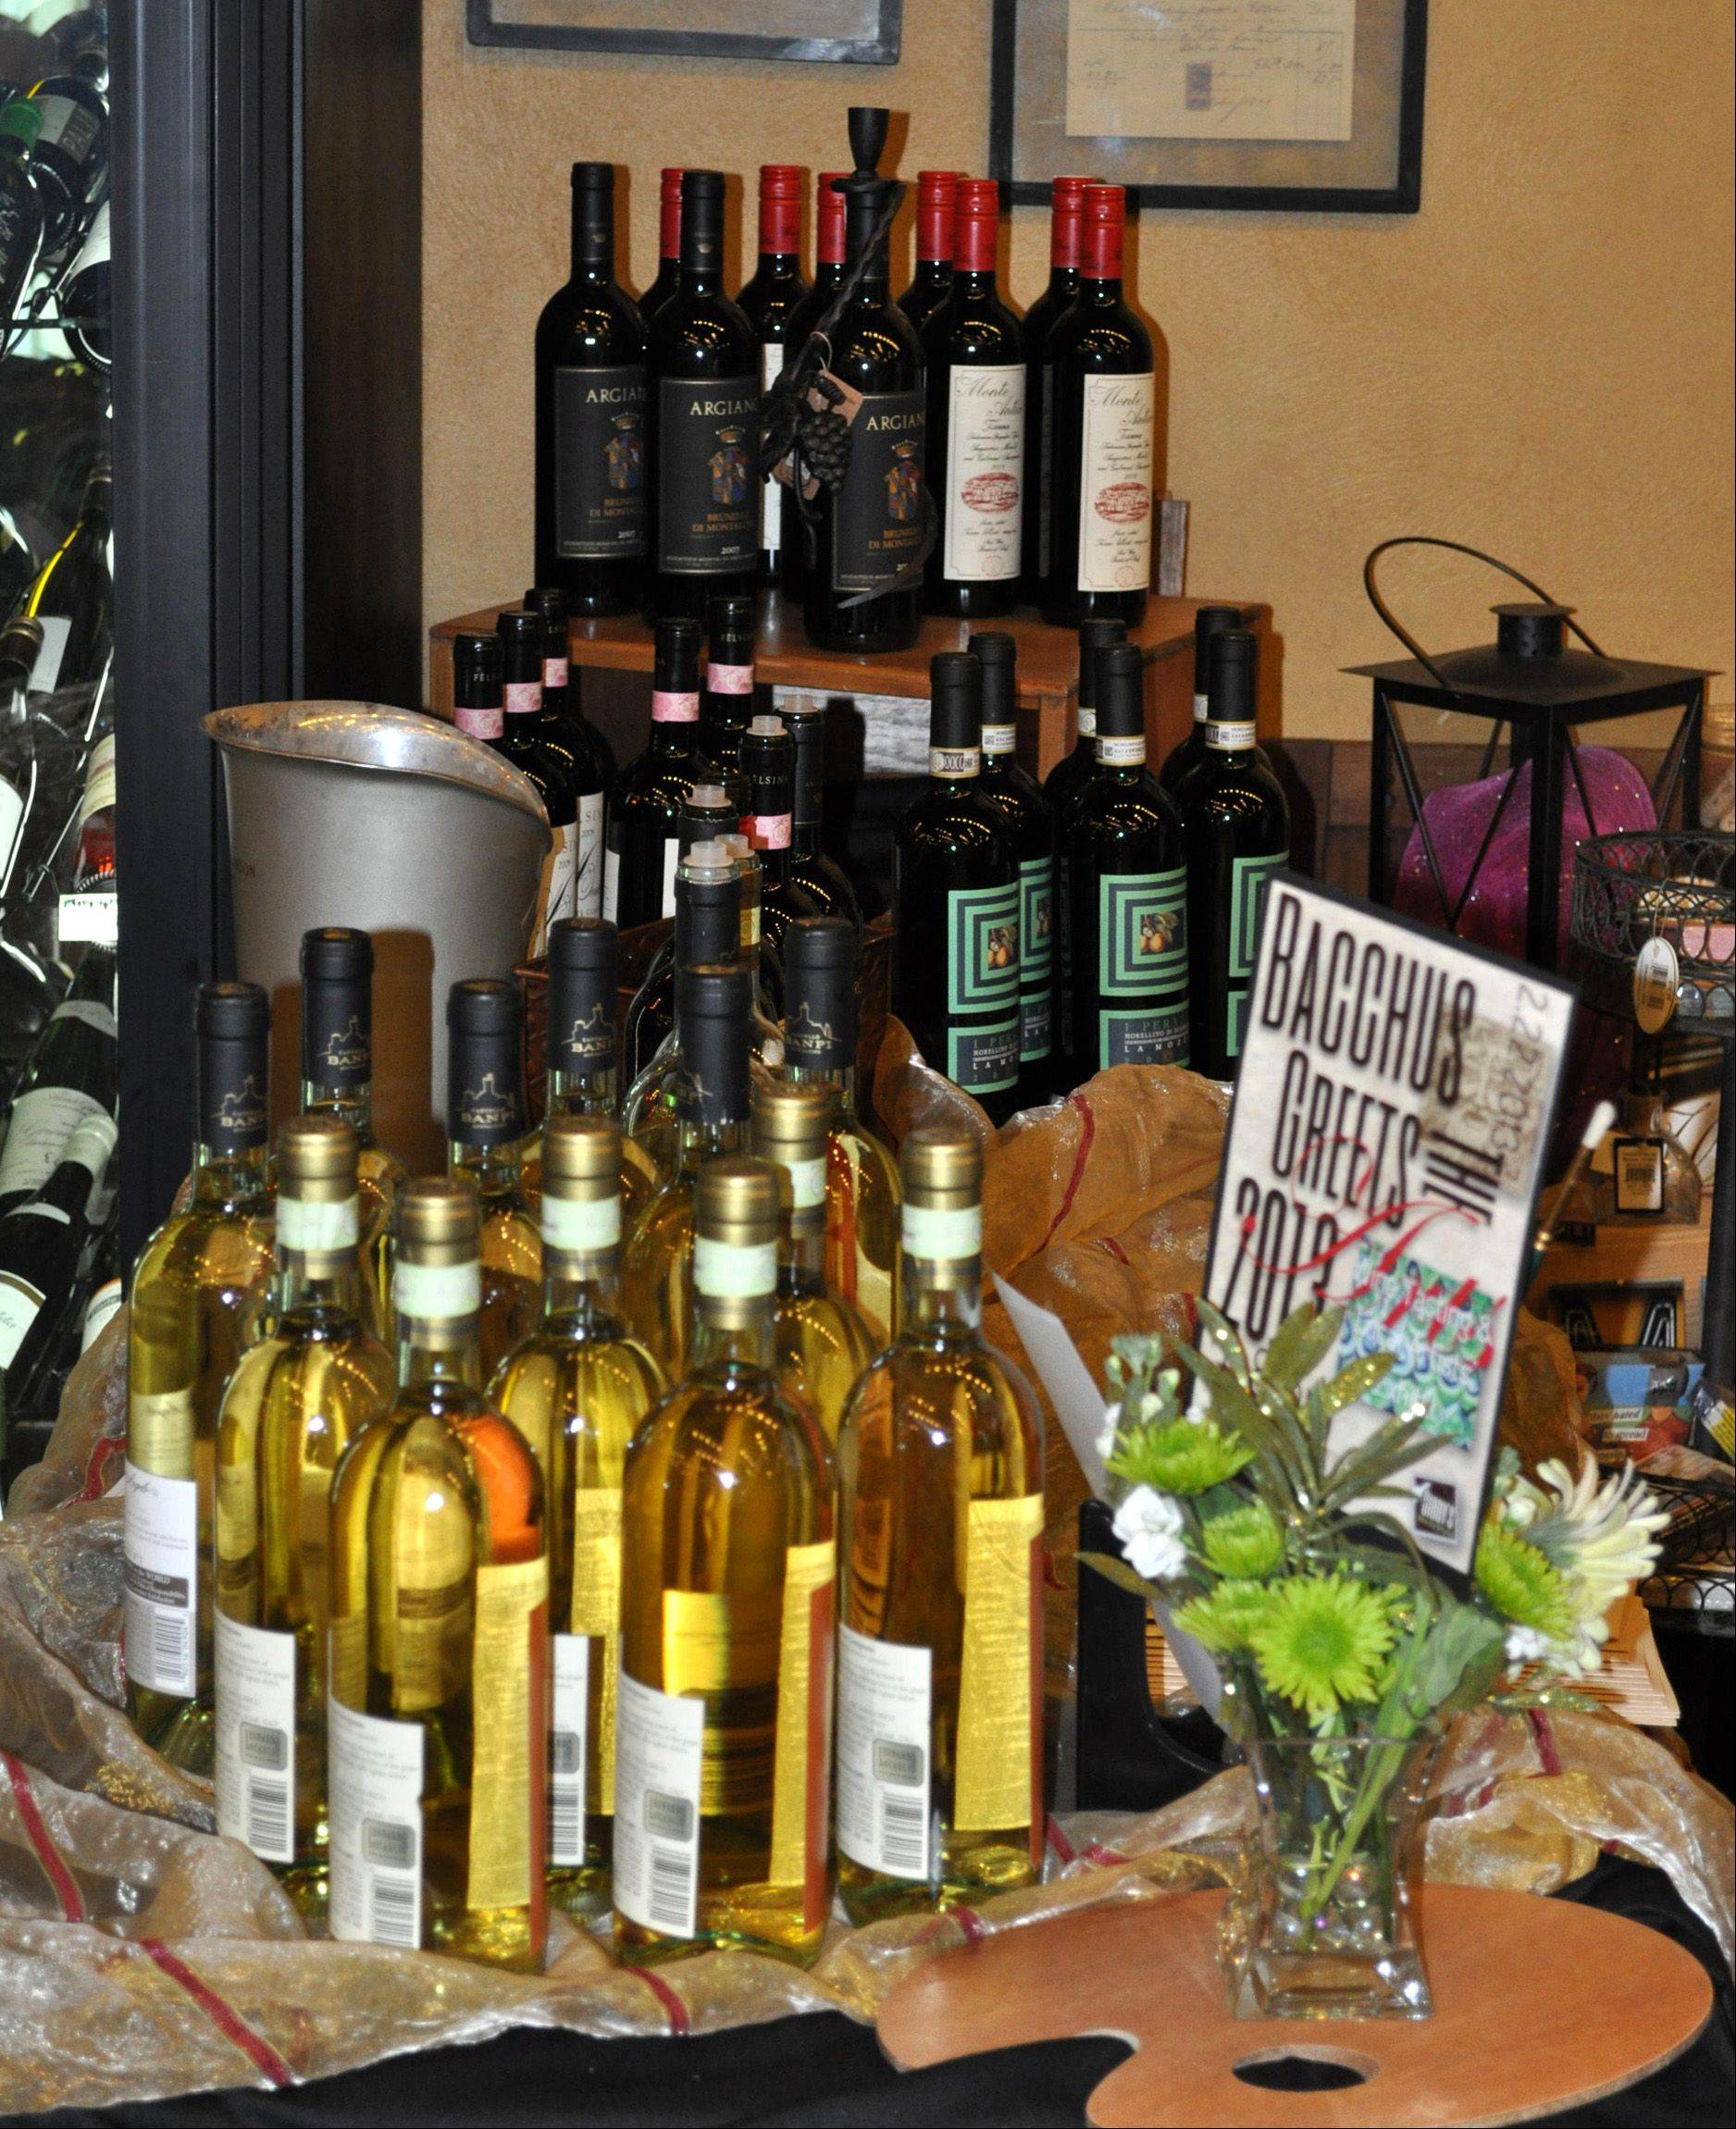 Gibby�s Wine Den in Geneva is seeking submissions for its upcoming Bacchus Greets the Arts event. Artists who would like to display and sell their artwork can contact Gibby�s to participate in the March 14 event, which is in its eighth year.